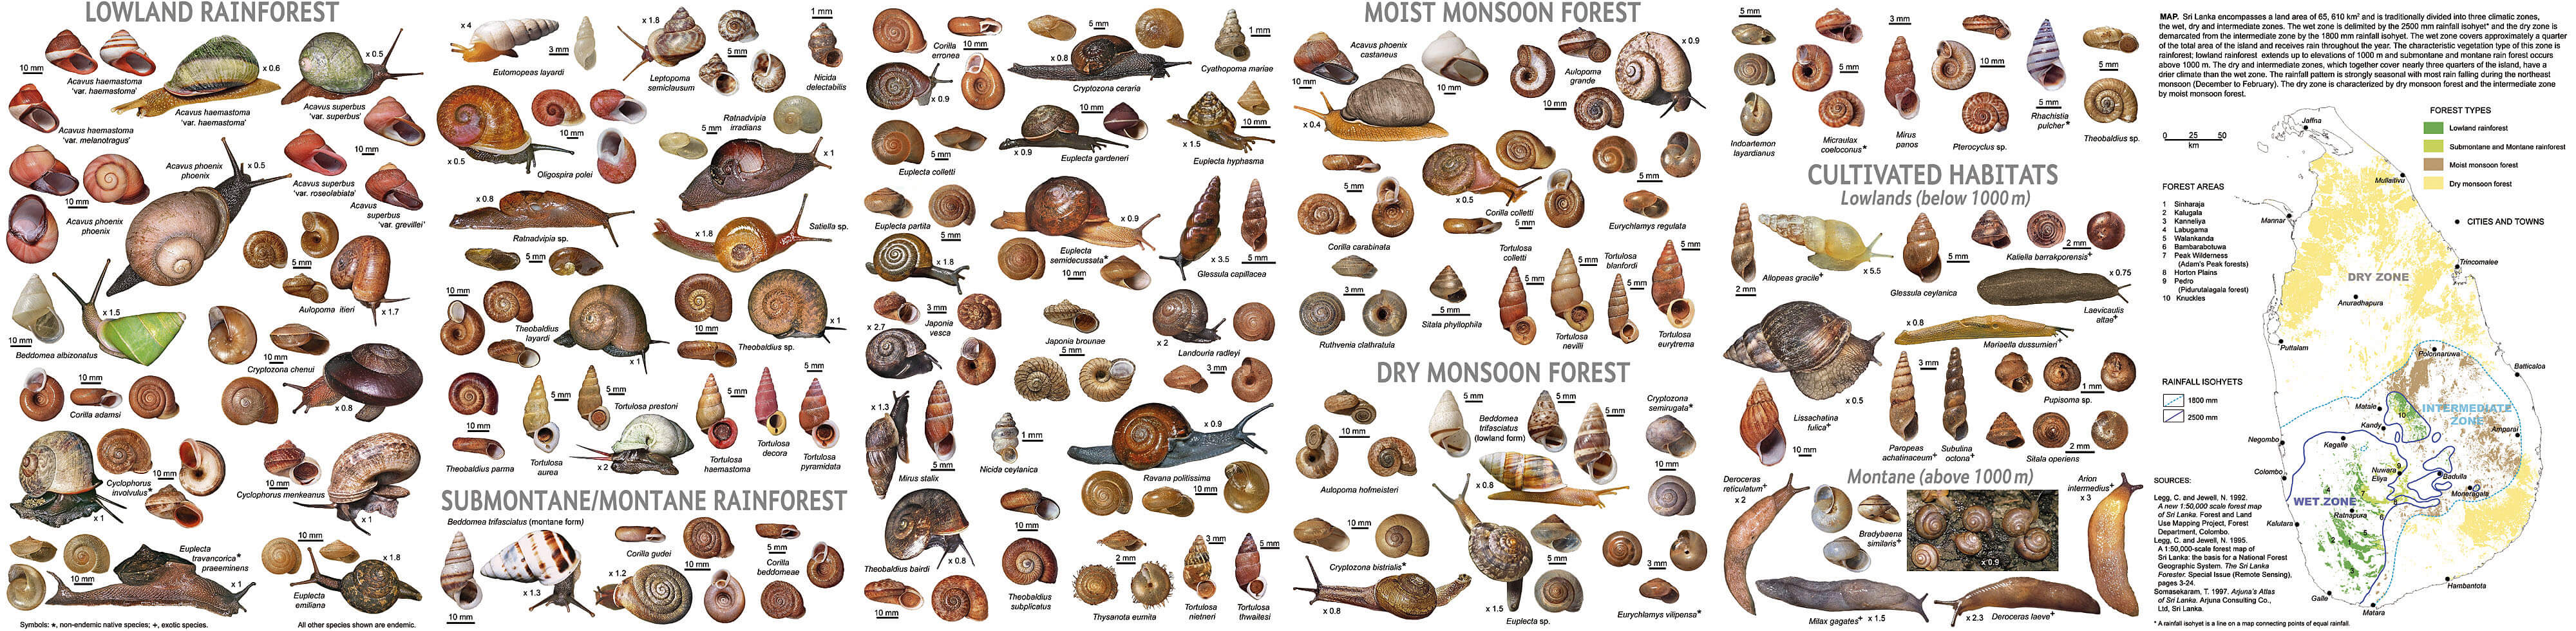 Snail identification guide photo